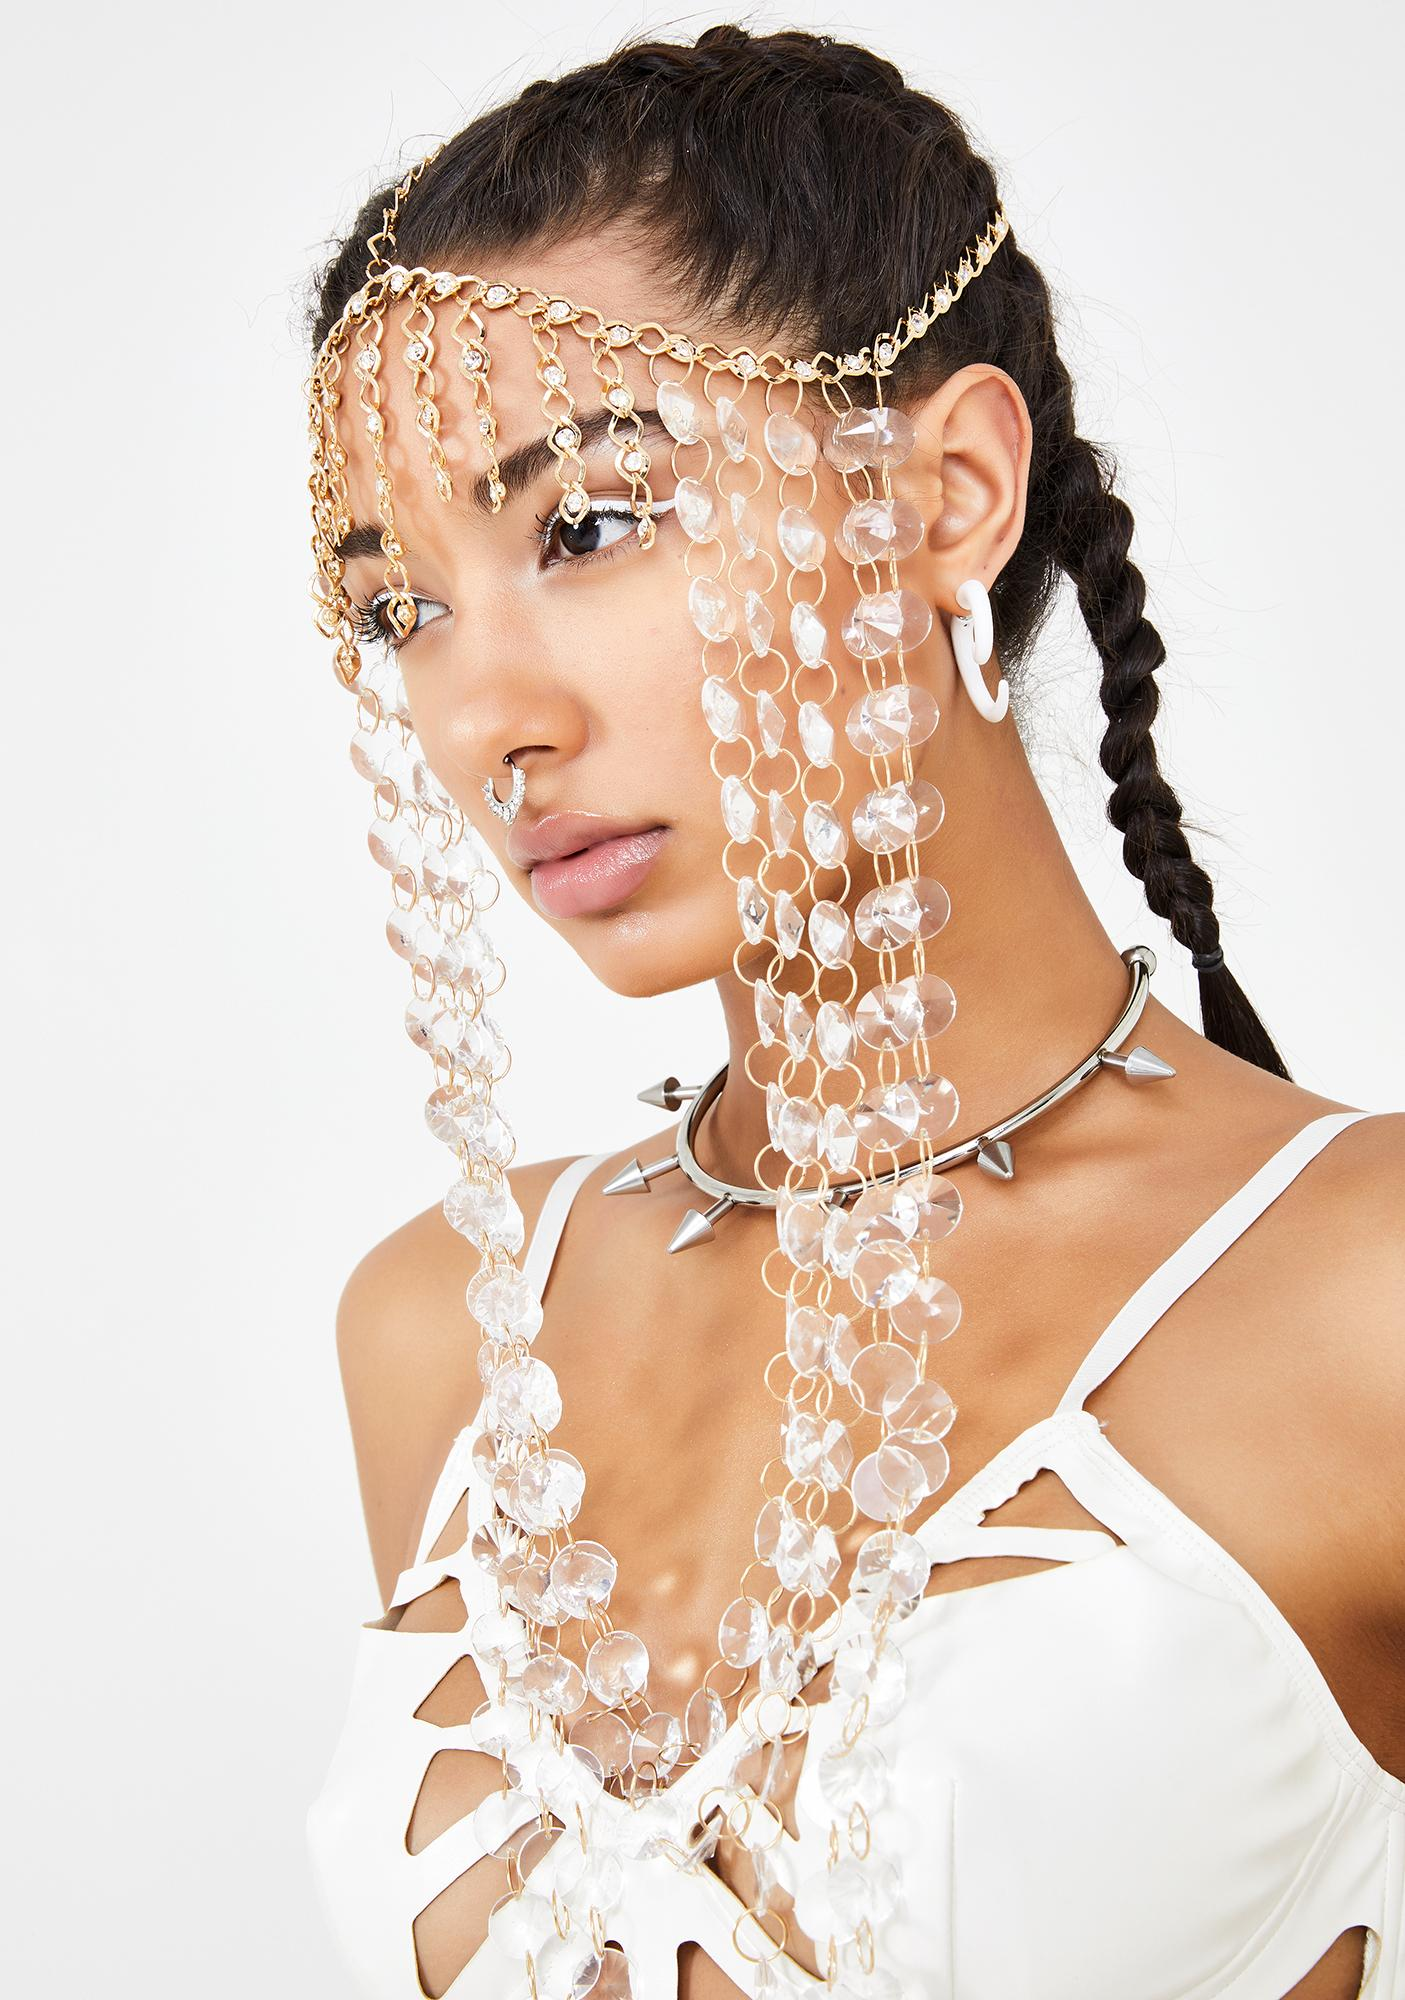 Skylight Serenity Head Chain